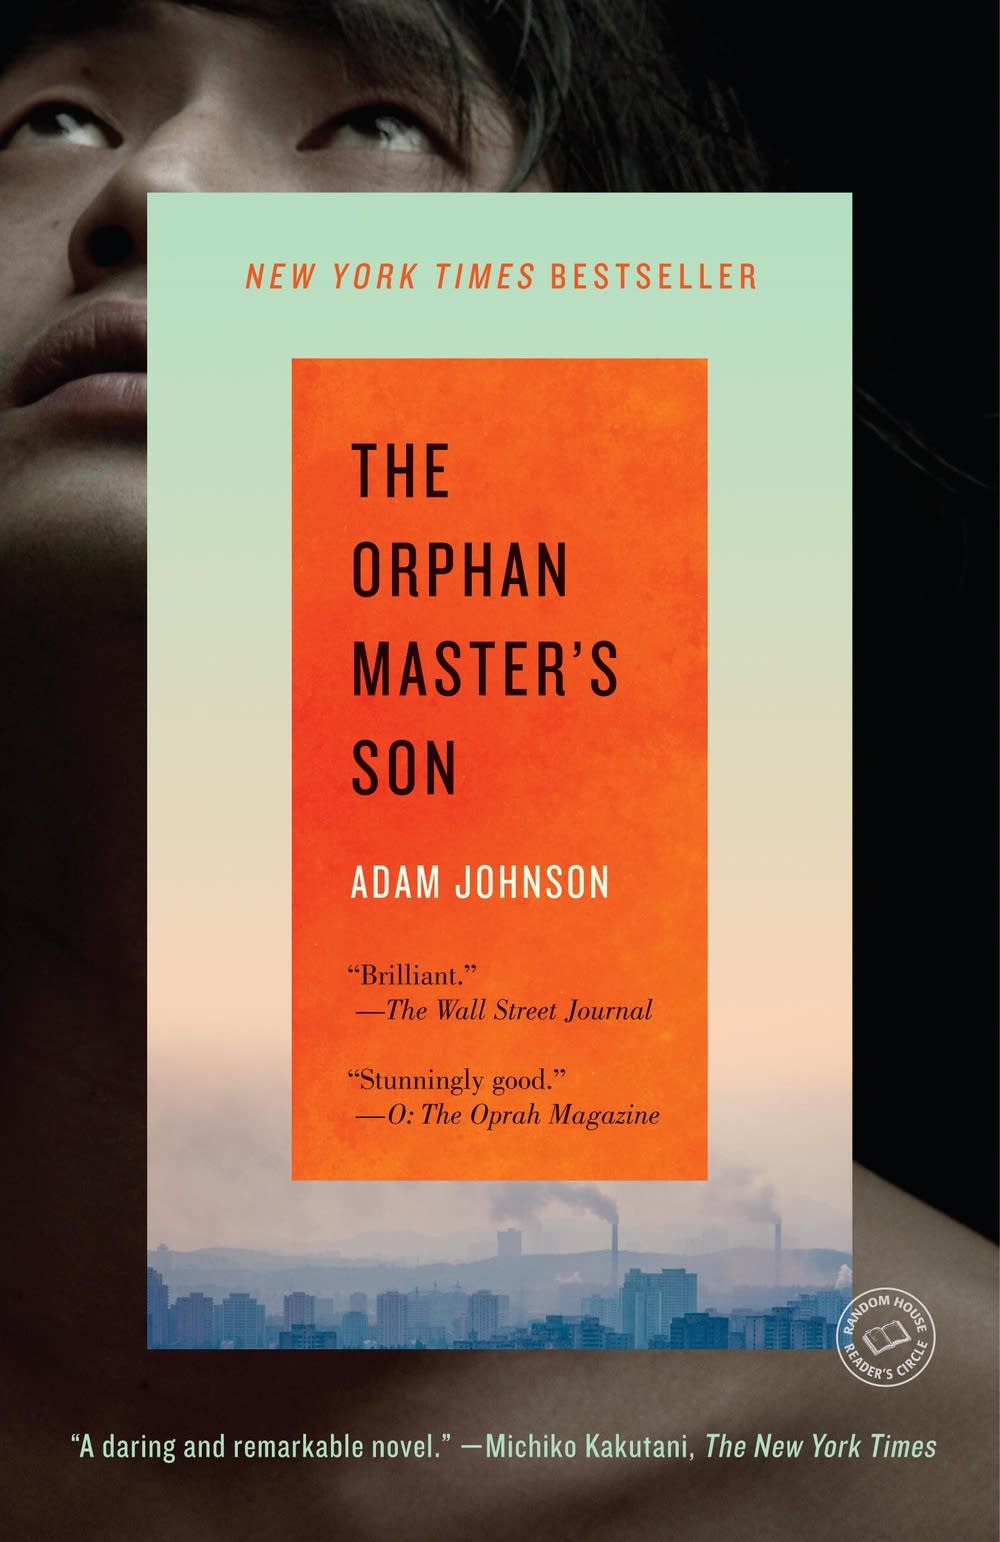 'Orphan Master's Son' by Adam Johnson